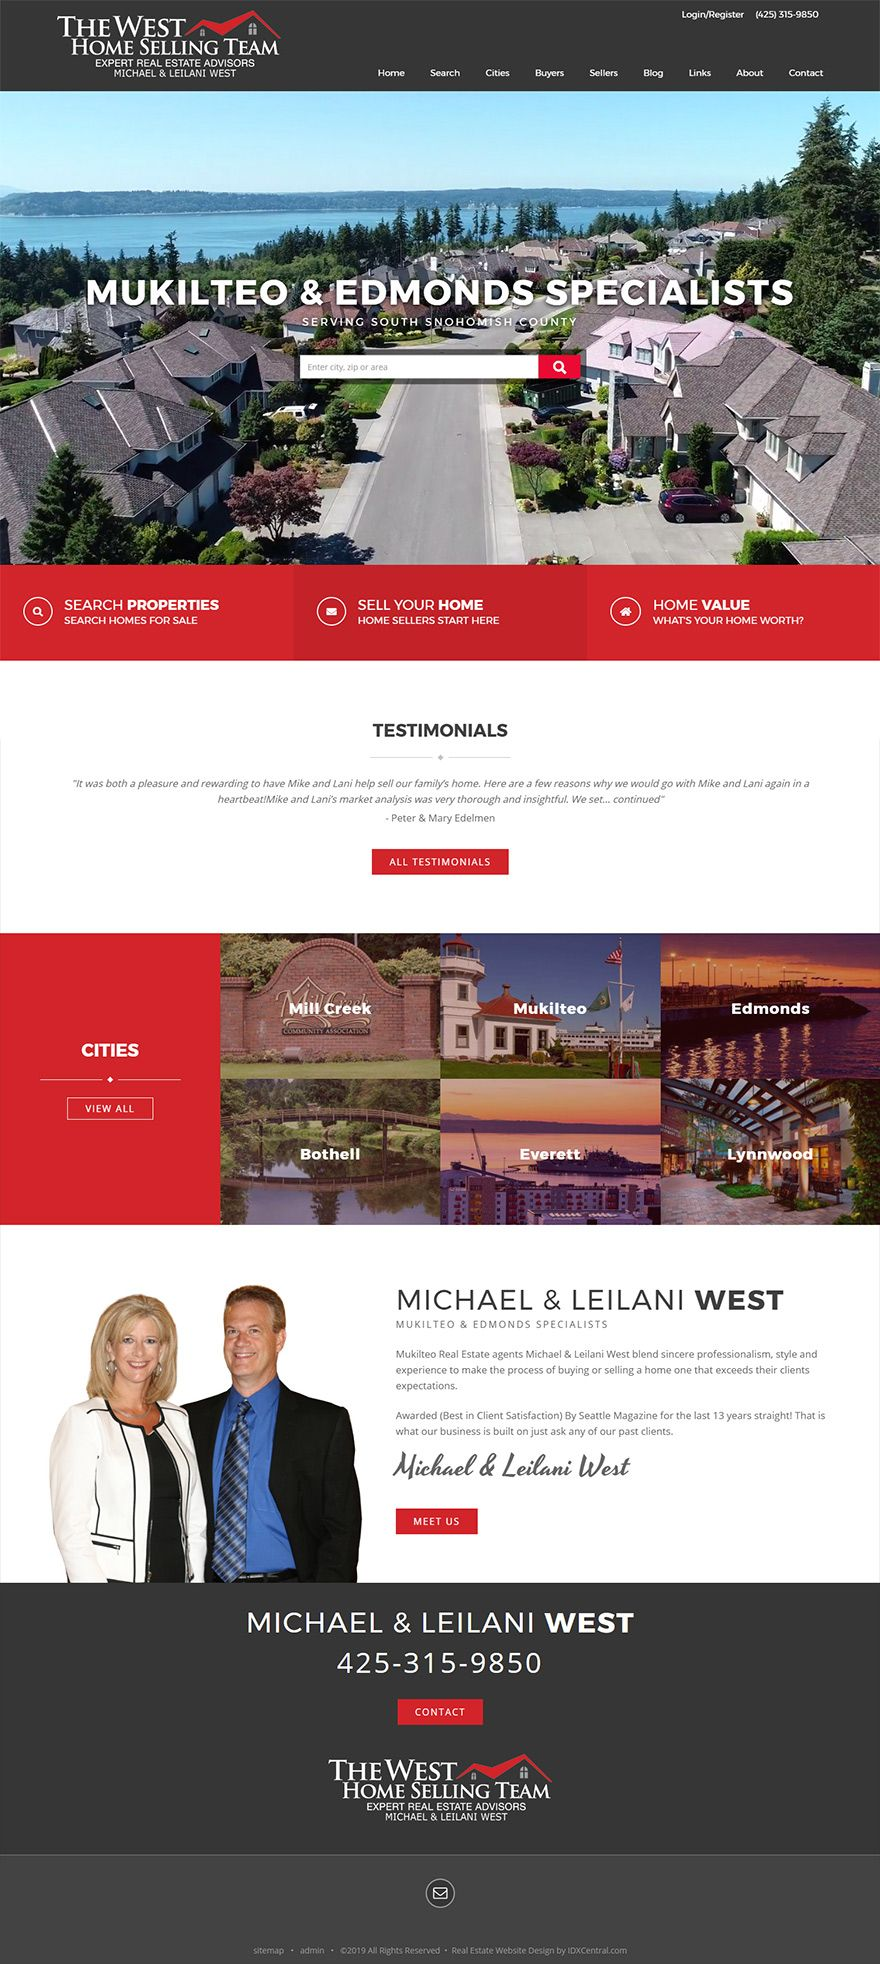 Washington North Of Seattle Washington Michael And Leilani West Serve South Snohomish County Real Real Estate Website Real Estate Marketing Realtor Websites